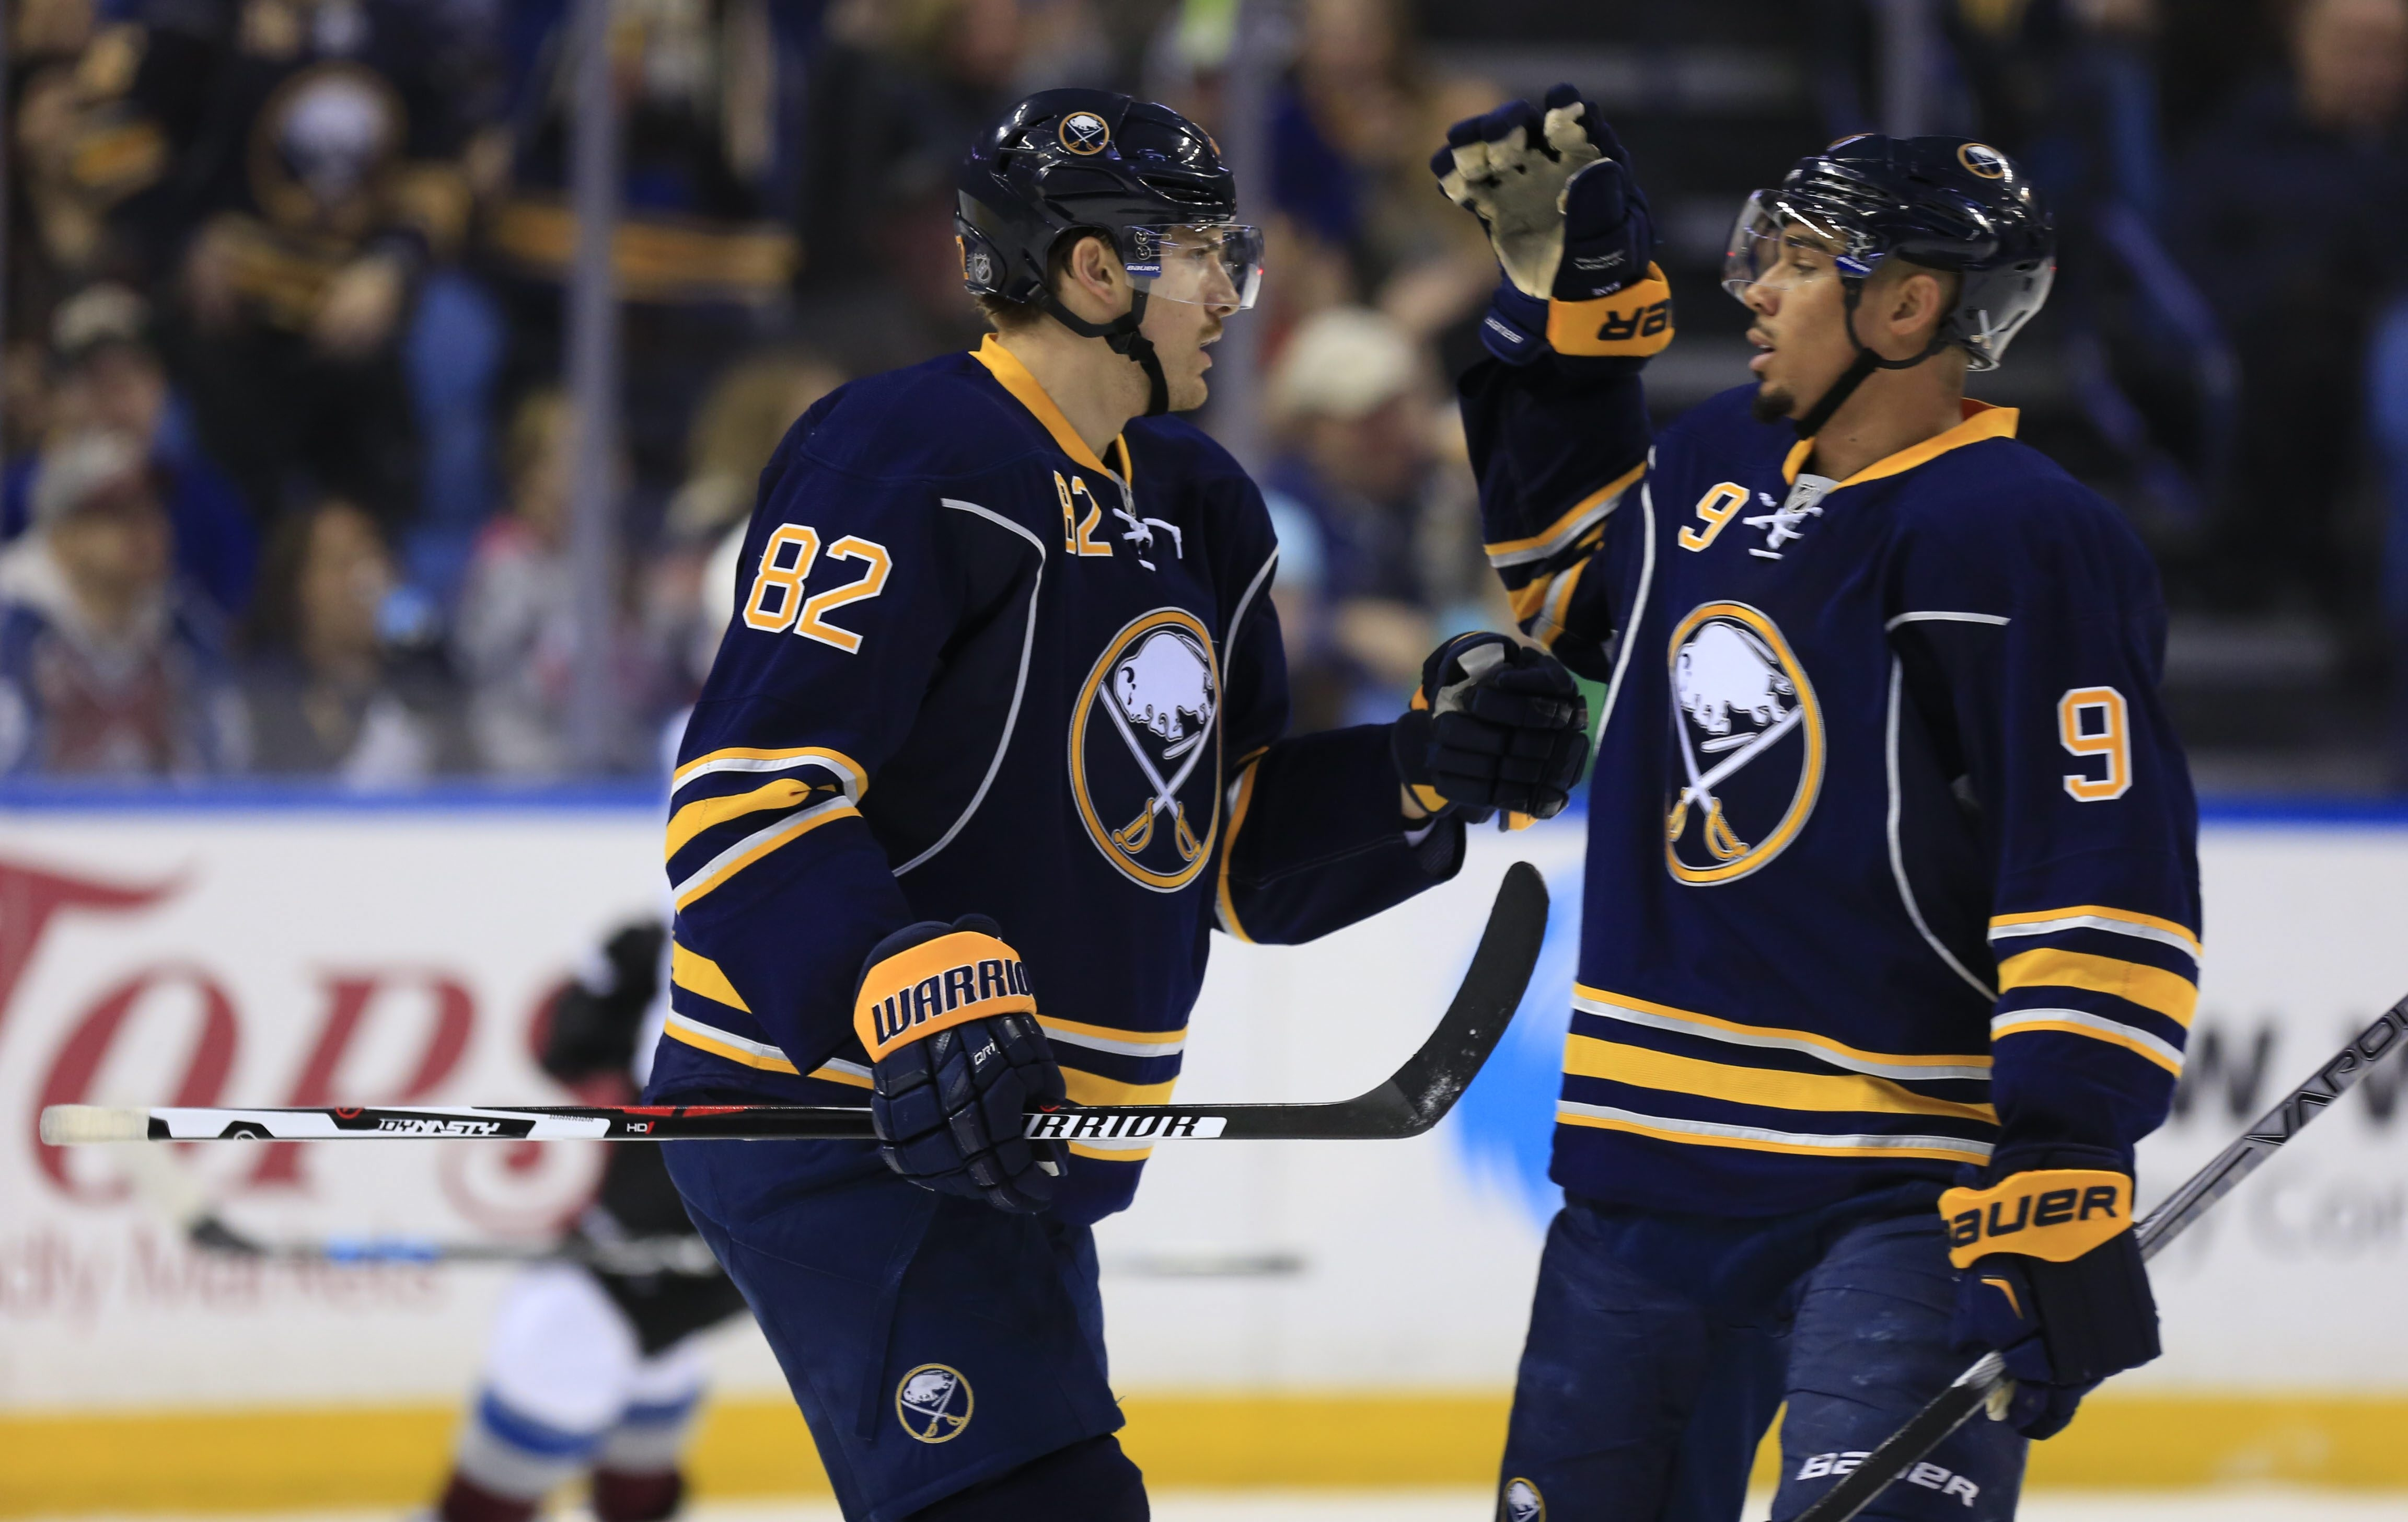 Evander Kane (right) celebrates his goal Sunday against Colorado (Harry Scull Jr/Buffalo News).